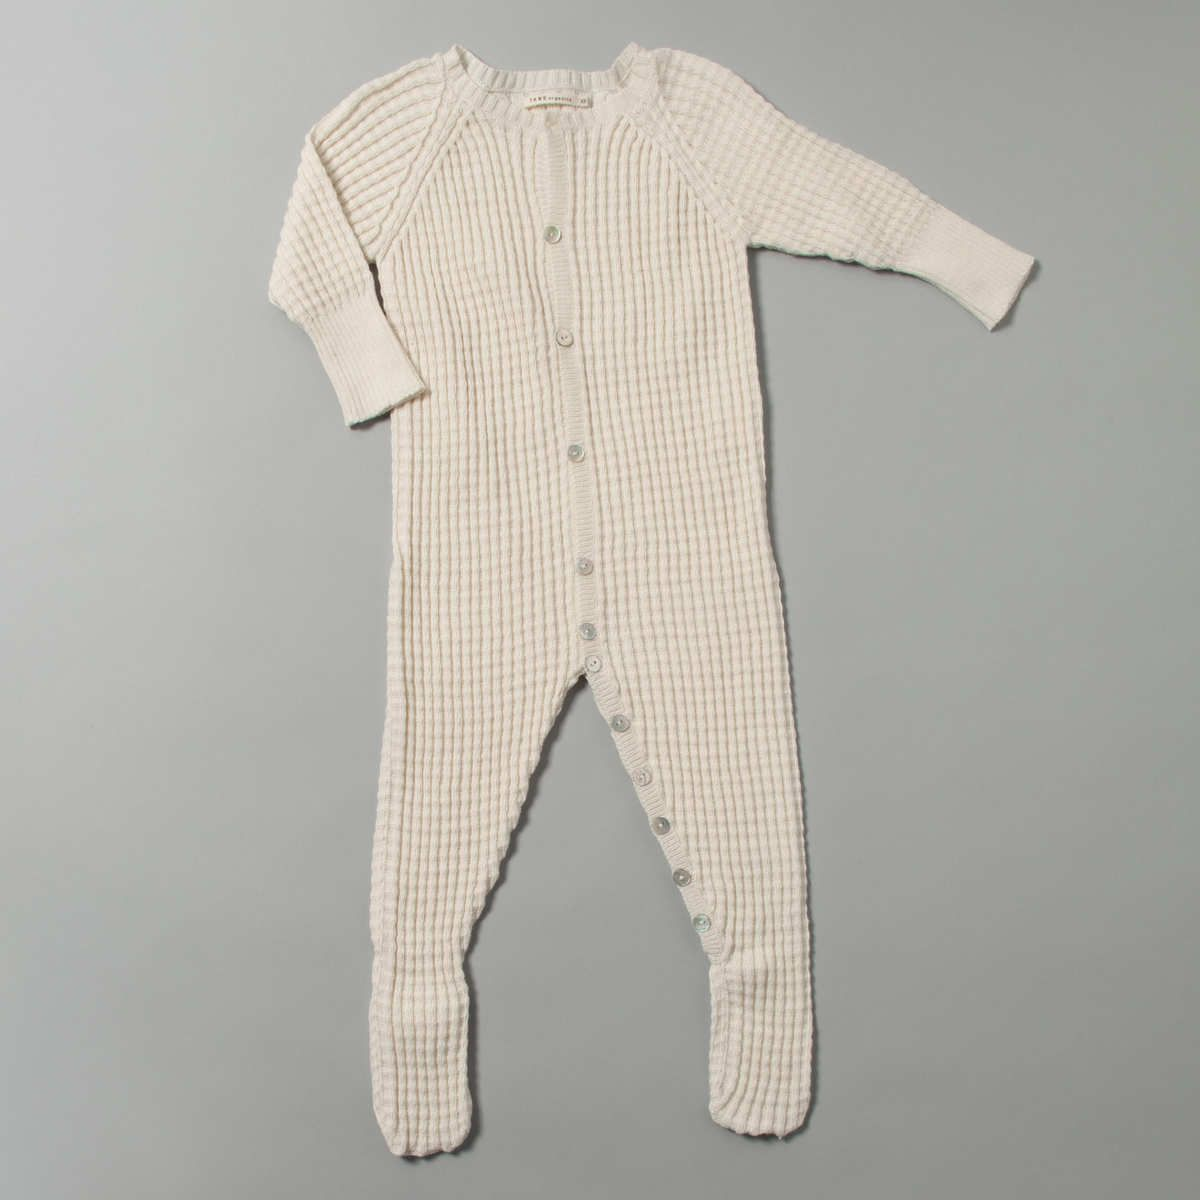 fef5fd05f5828 Luxurious Organic Infant and Baby Clothing  onesies   Thermal Stitch Onesie